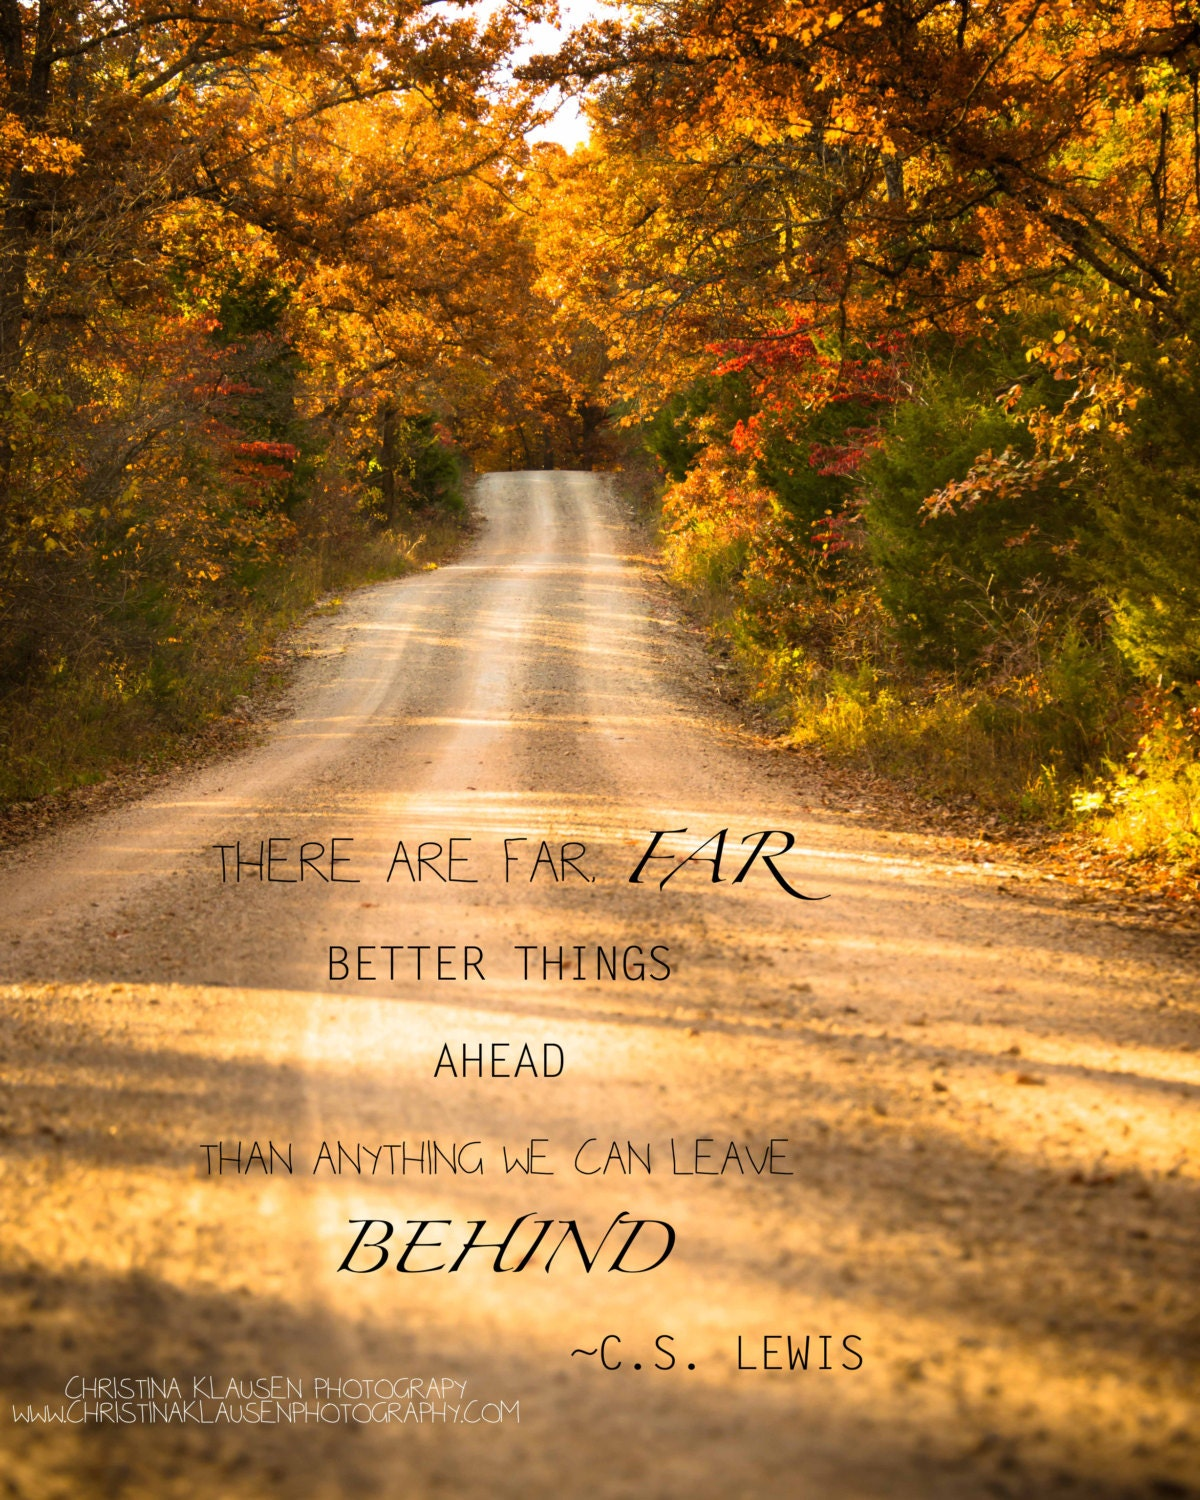 Spiritual Uplifting Quotes: Inspirational Quote Photo. C.S. Lewis Quote. Rustic Road